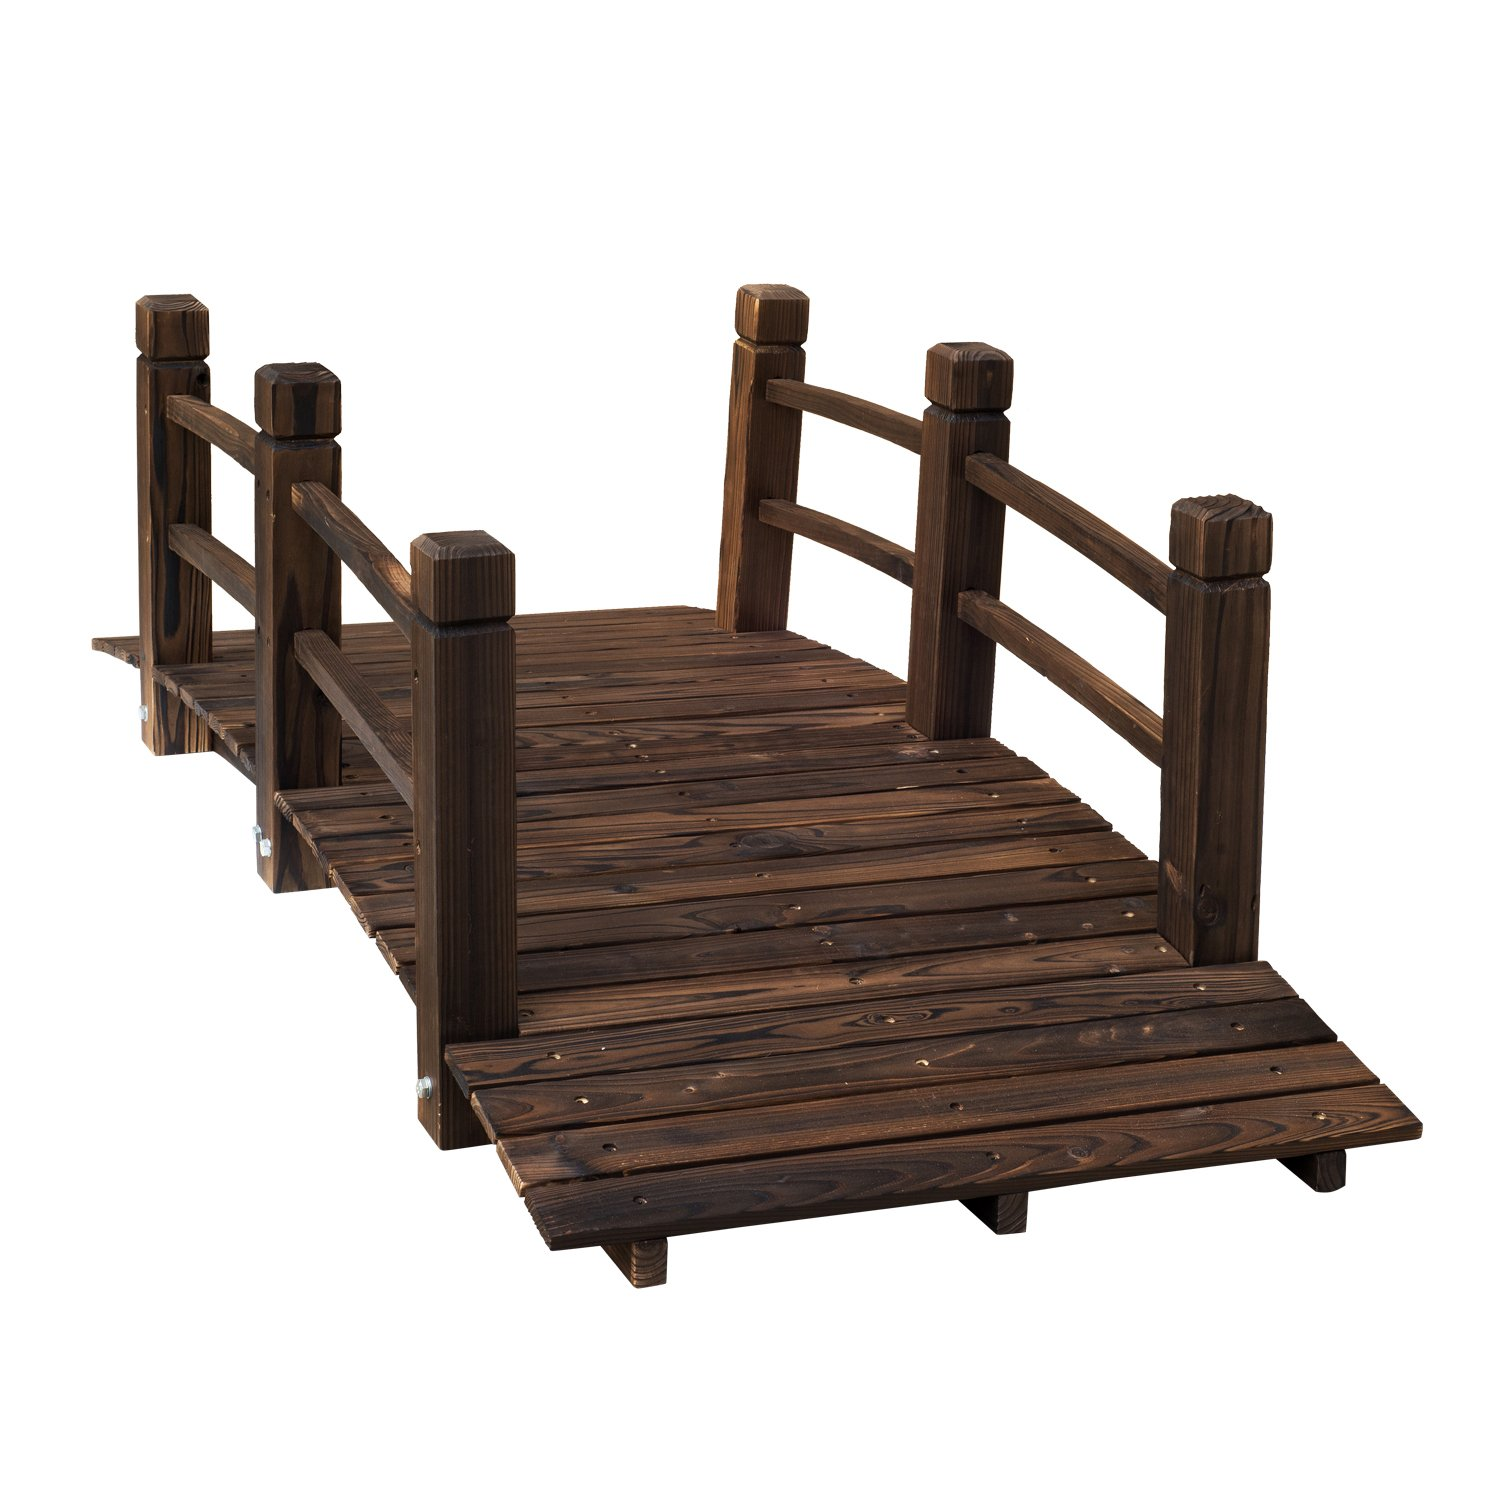 Outsunny 5' Wooden Rustic Arched Garden Bridge with Railings - Stained Wood